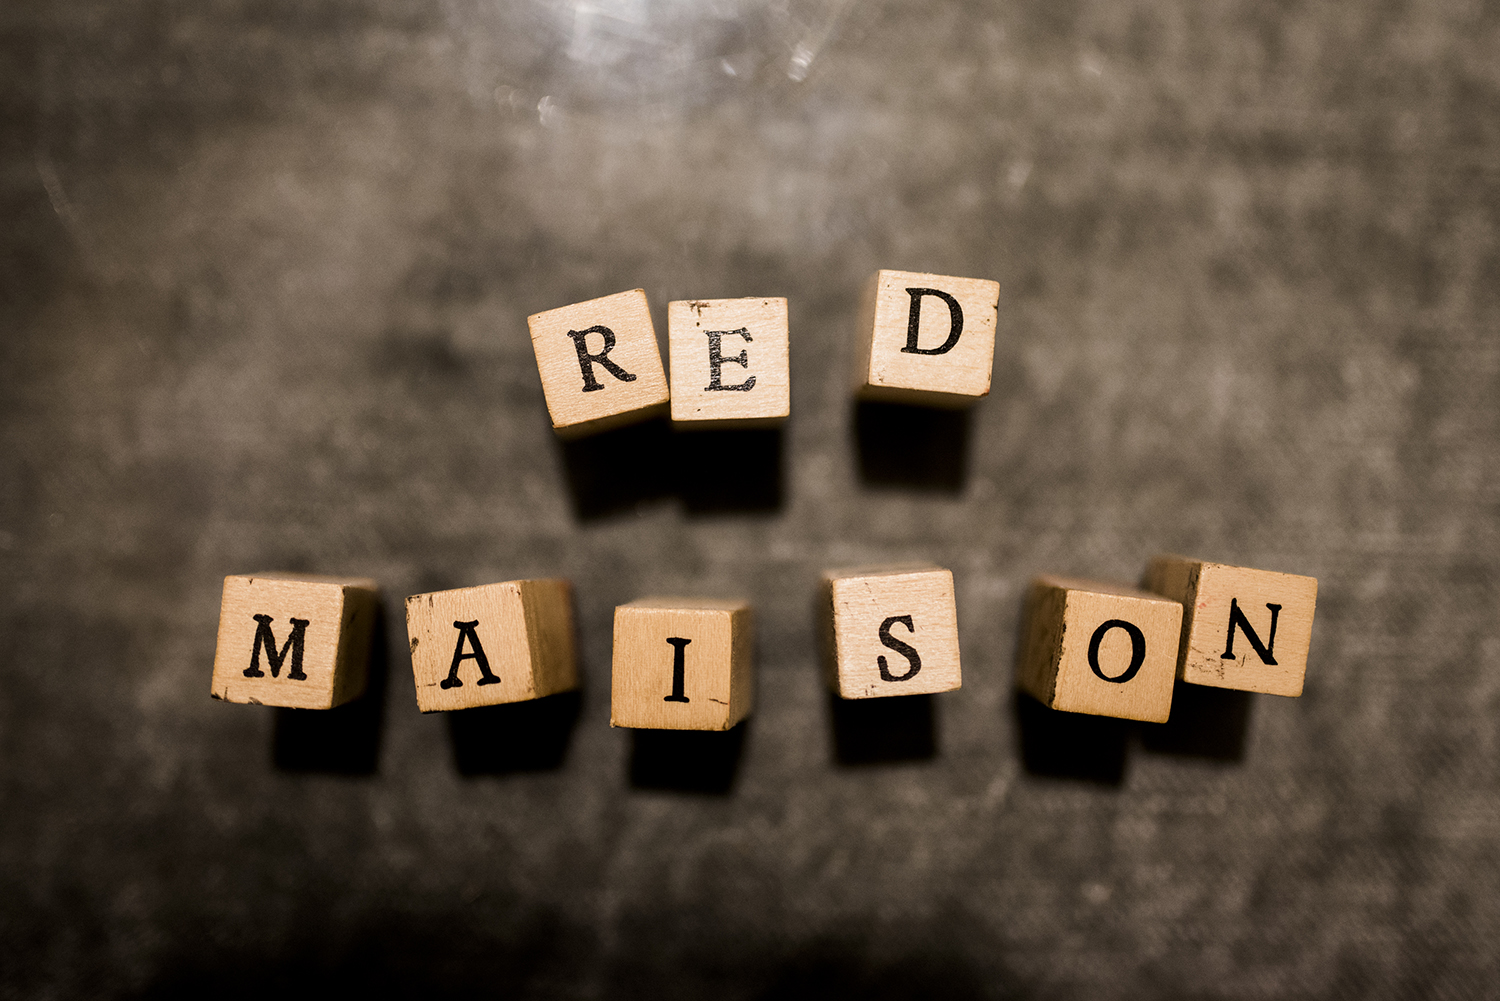 red maison